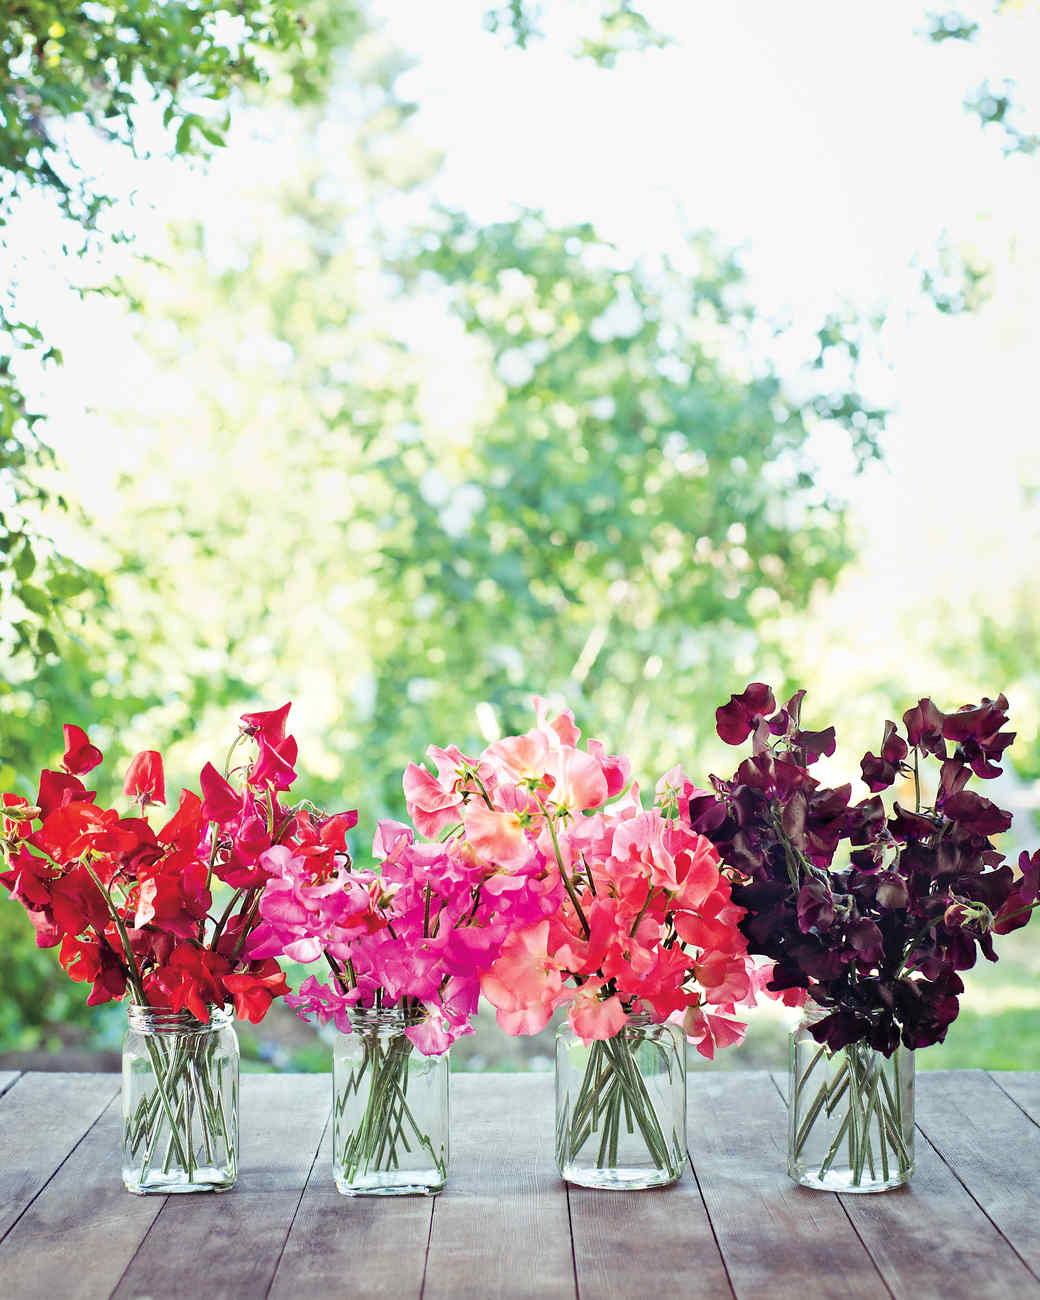 10 Questions for 2014 American Made Honoree Floret Flower Farm